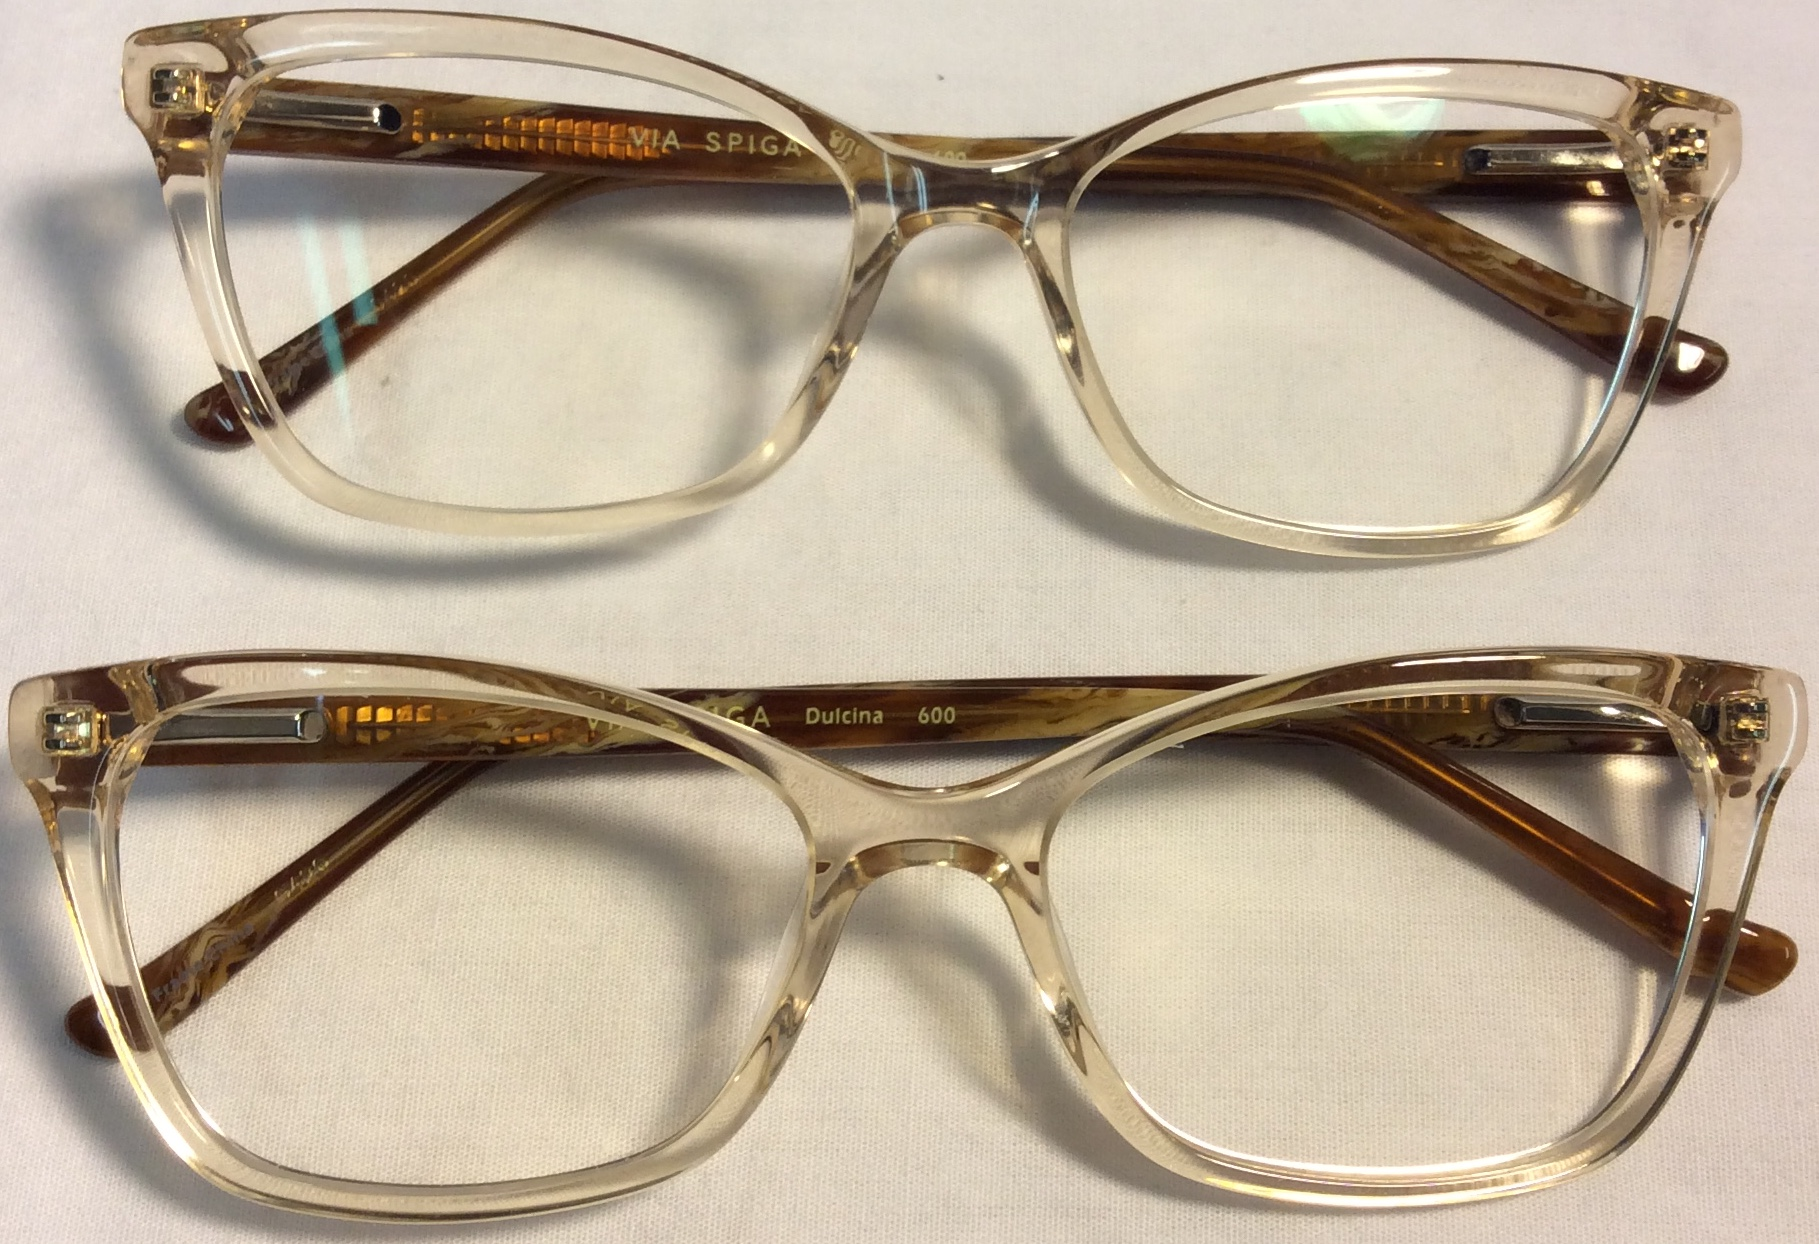 Via Spica Beige tinted framed eyeglasses (one ALR)